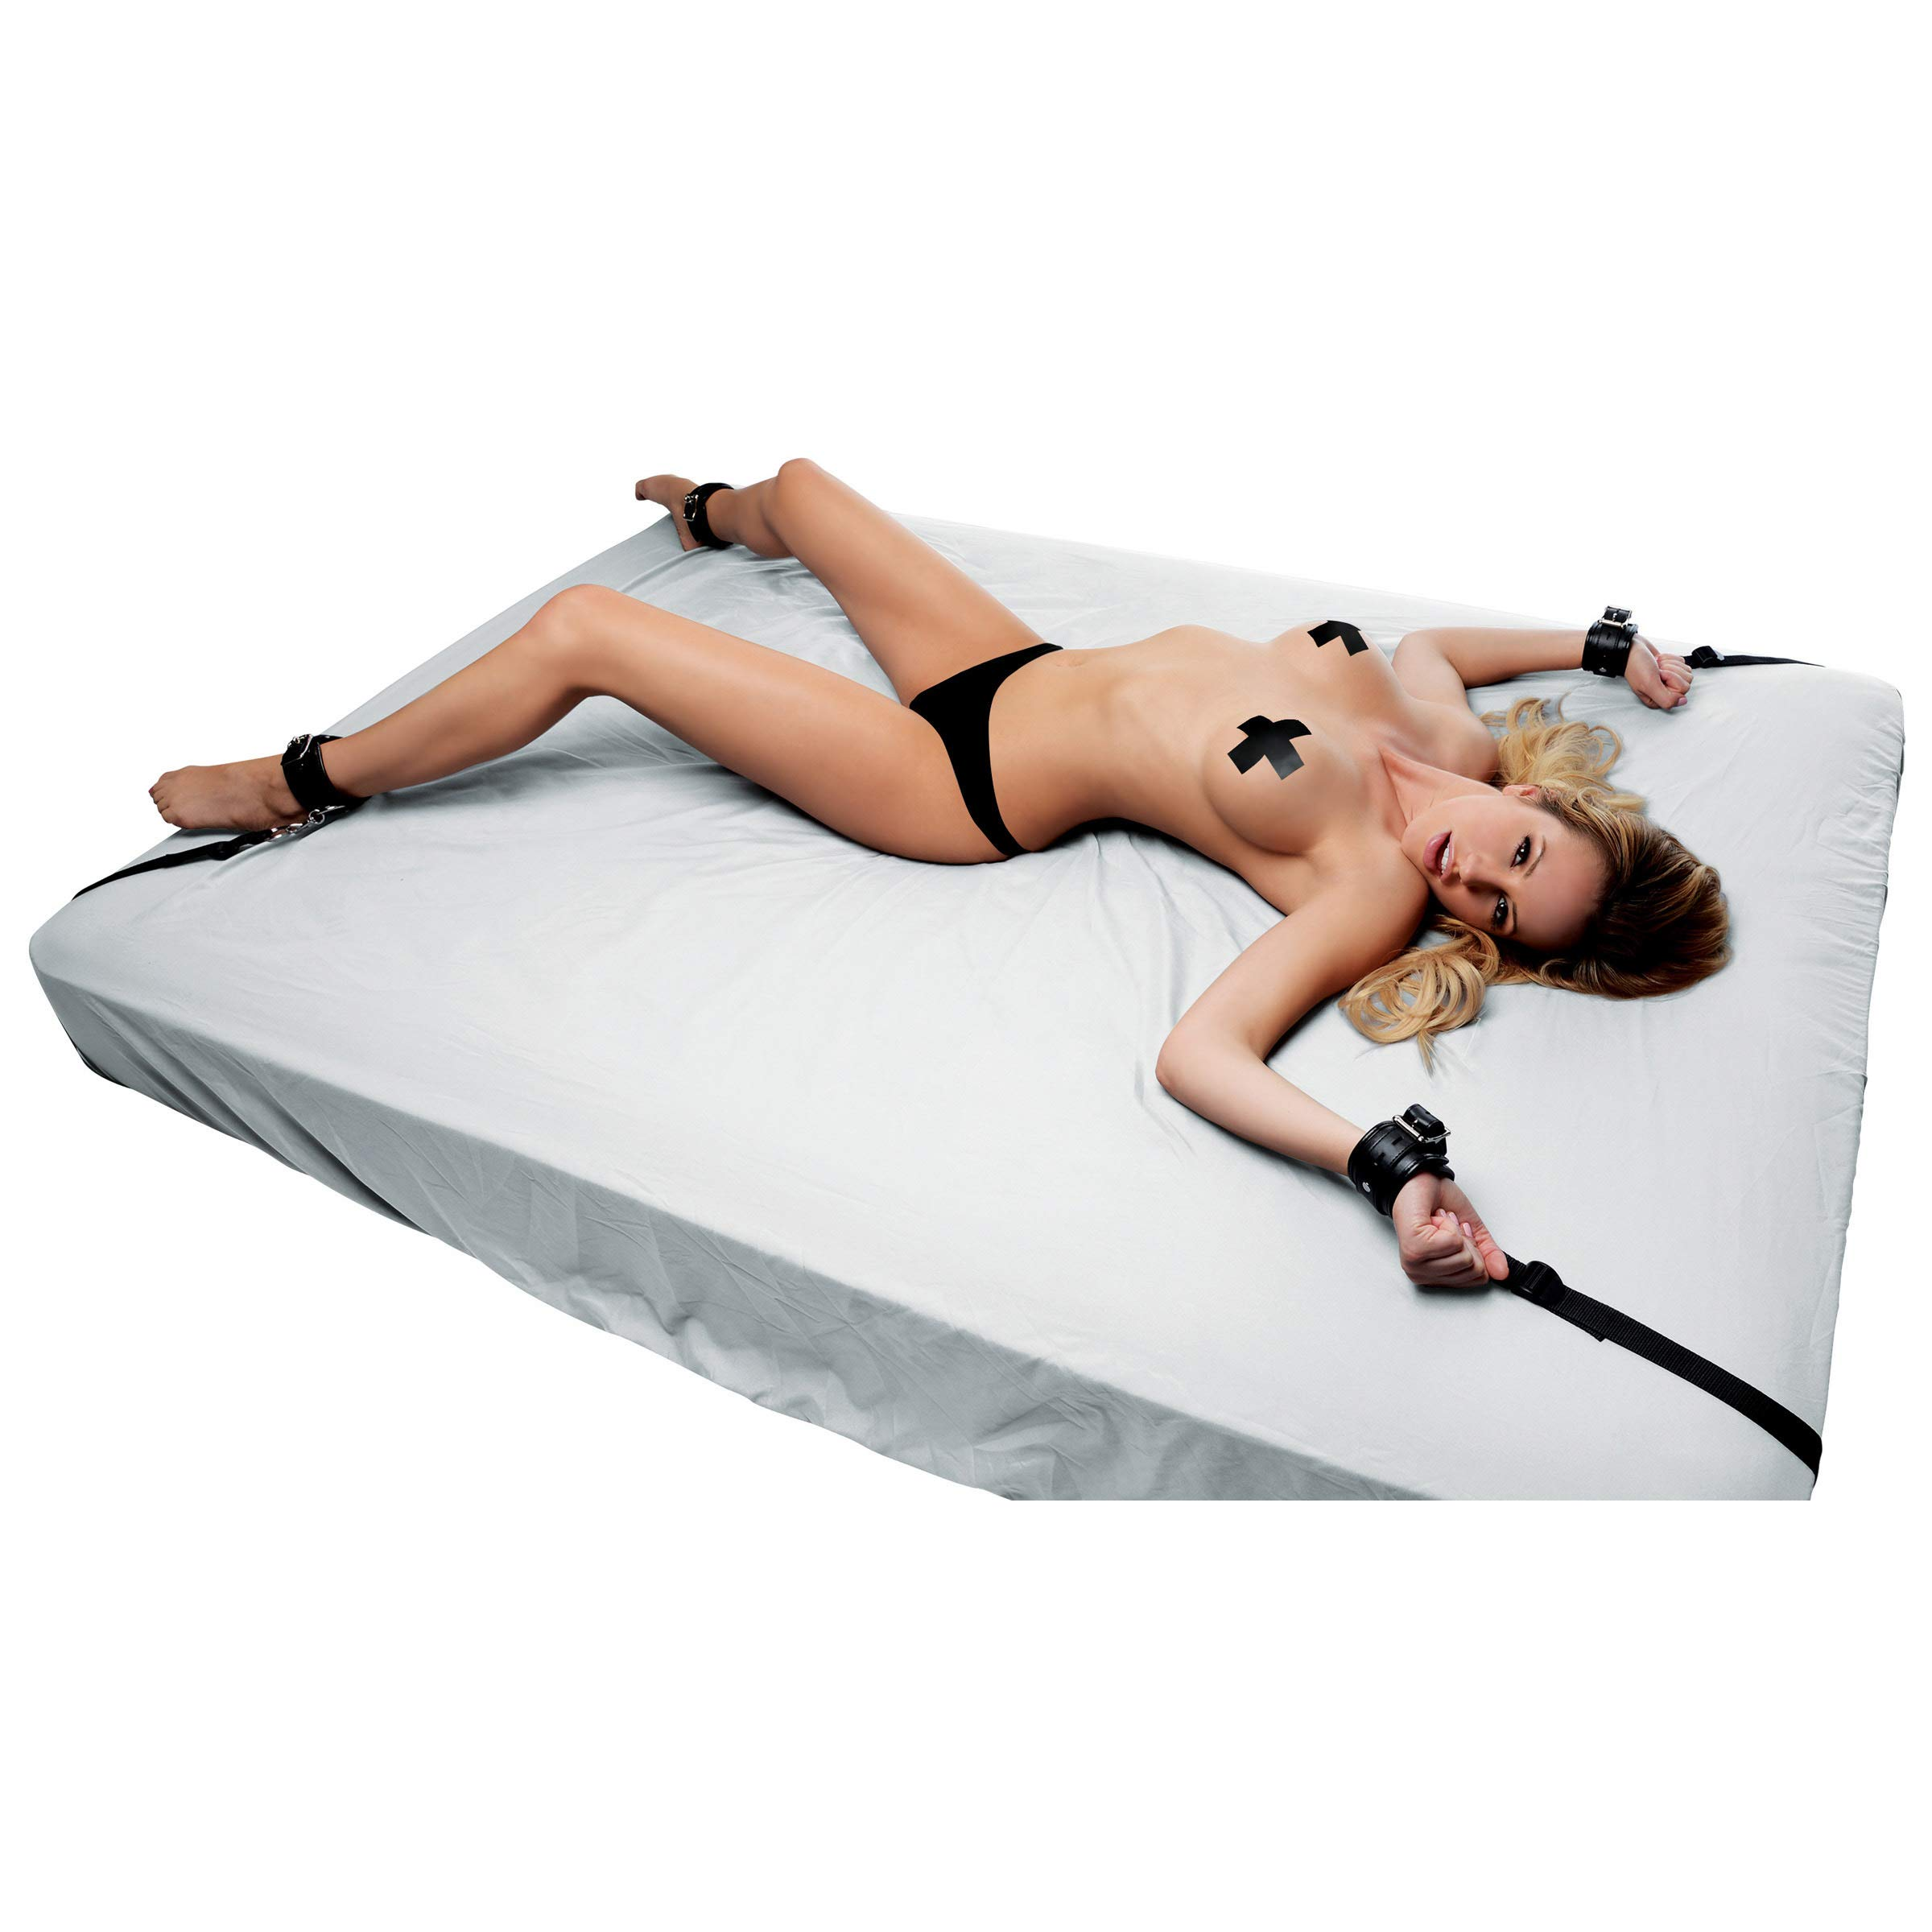 STRICT Deluxe Bed Restraint Kit by STRICT